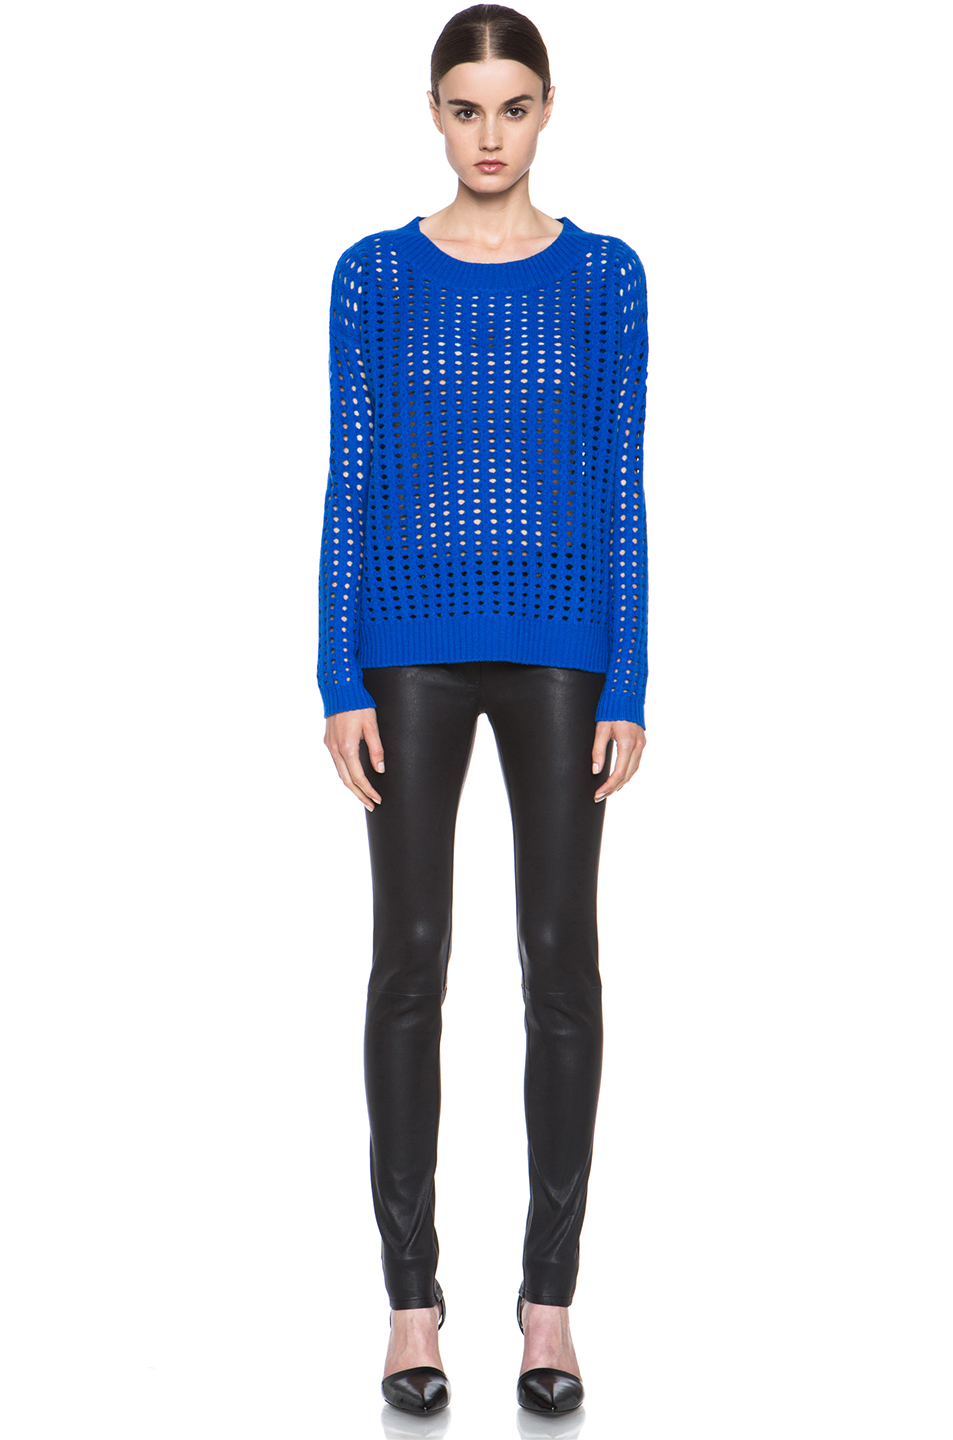 Tess Giberson|Mesh Sweater in Cobalt